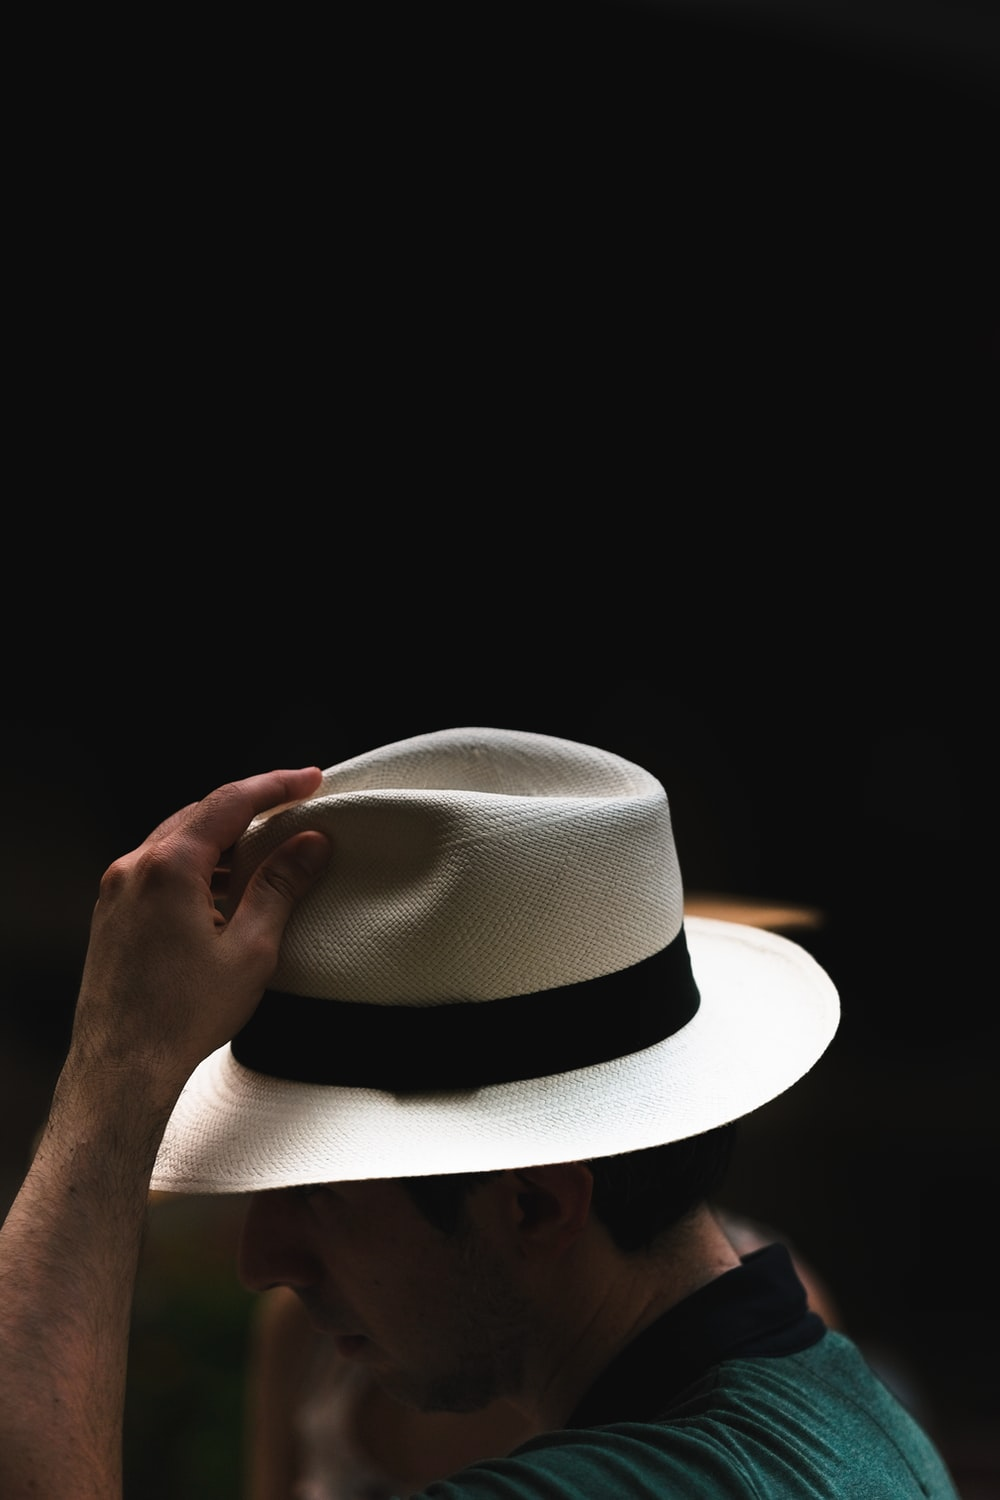 person wearing white fedora hat